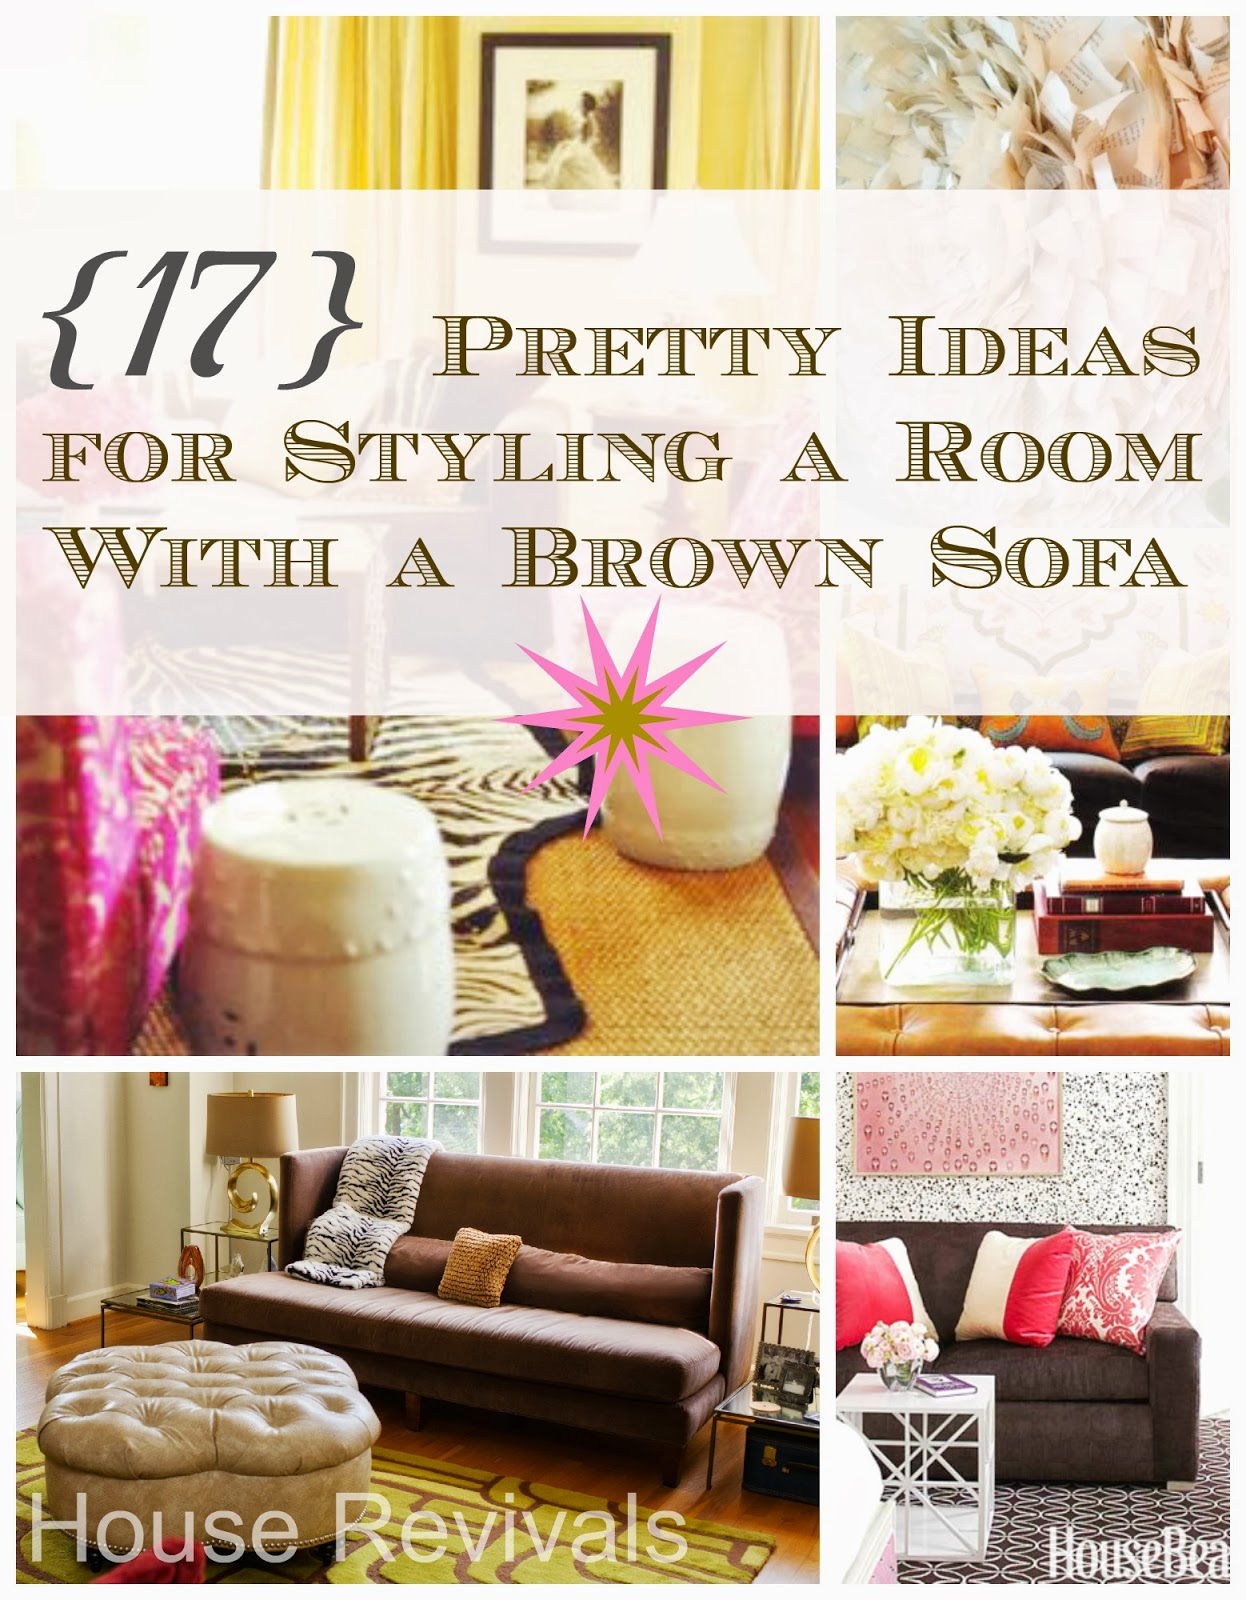 Living Room Decorating Ideas With Brown Leather Sofa house revivals: 17 pretty ways to decorate with a brown sofa